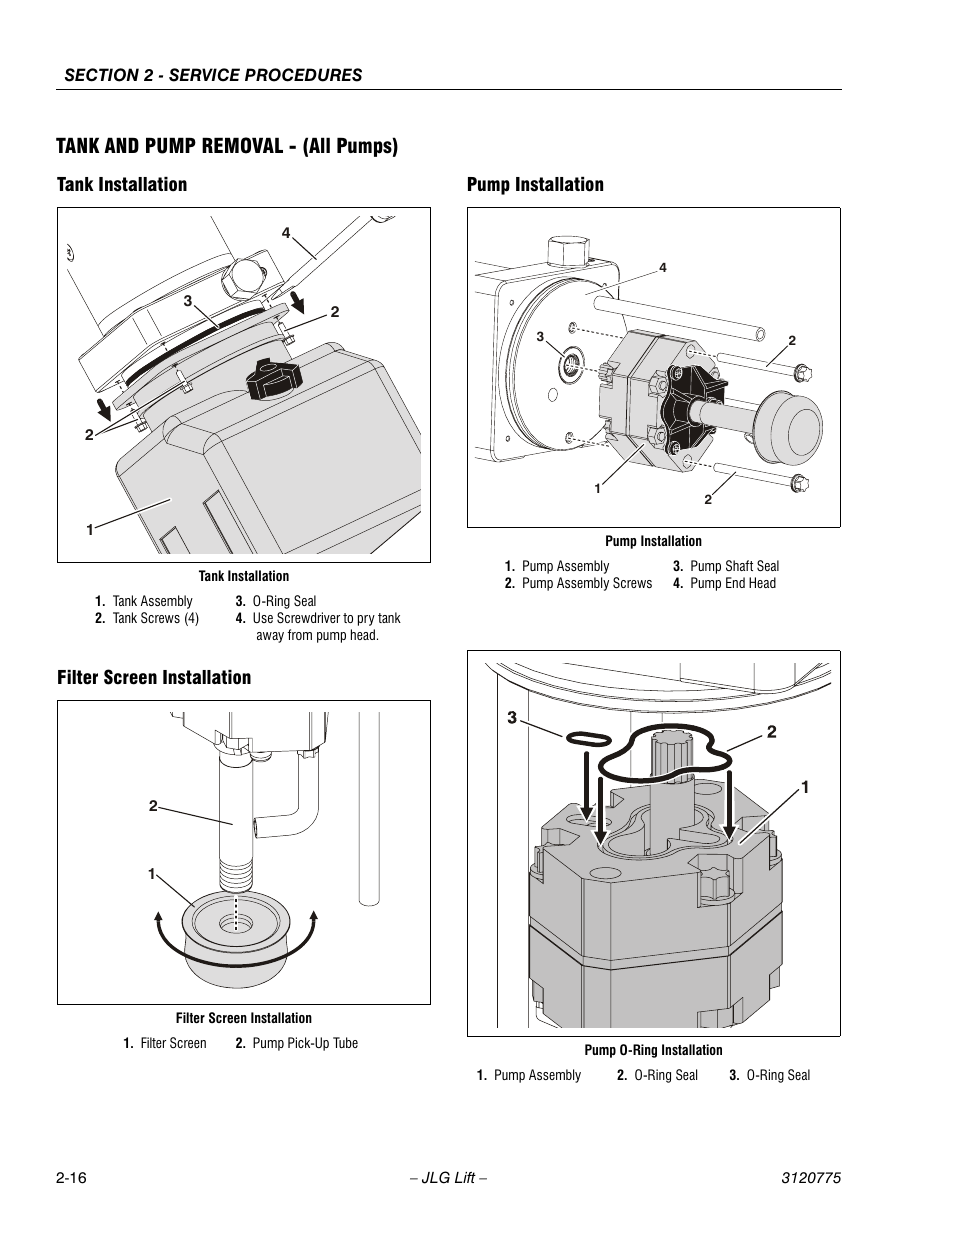 Tank And Pump Removal